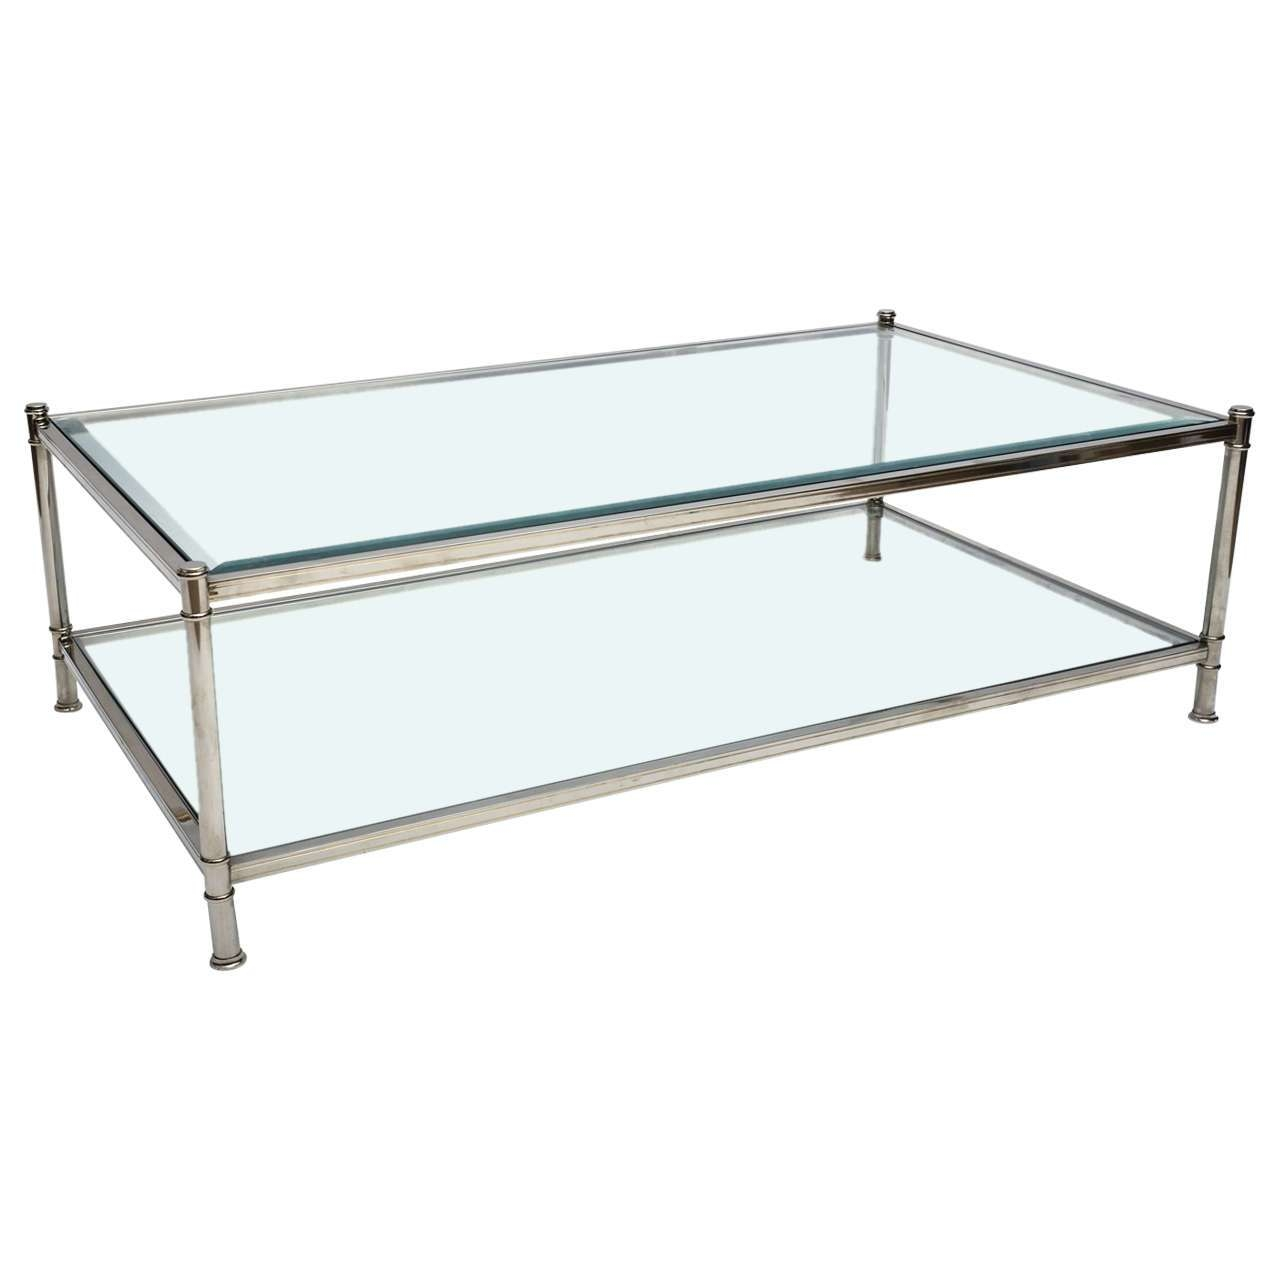 Coffee Tables Ideas: Cool Two Tier Glass Coffee Table Two Tier Inside Most Popular Chrome Glass Coffee Tables (View 13 of 20)